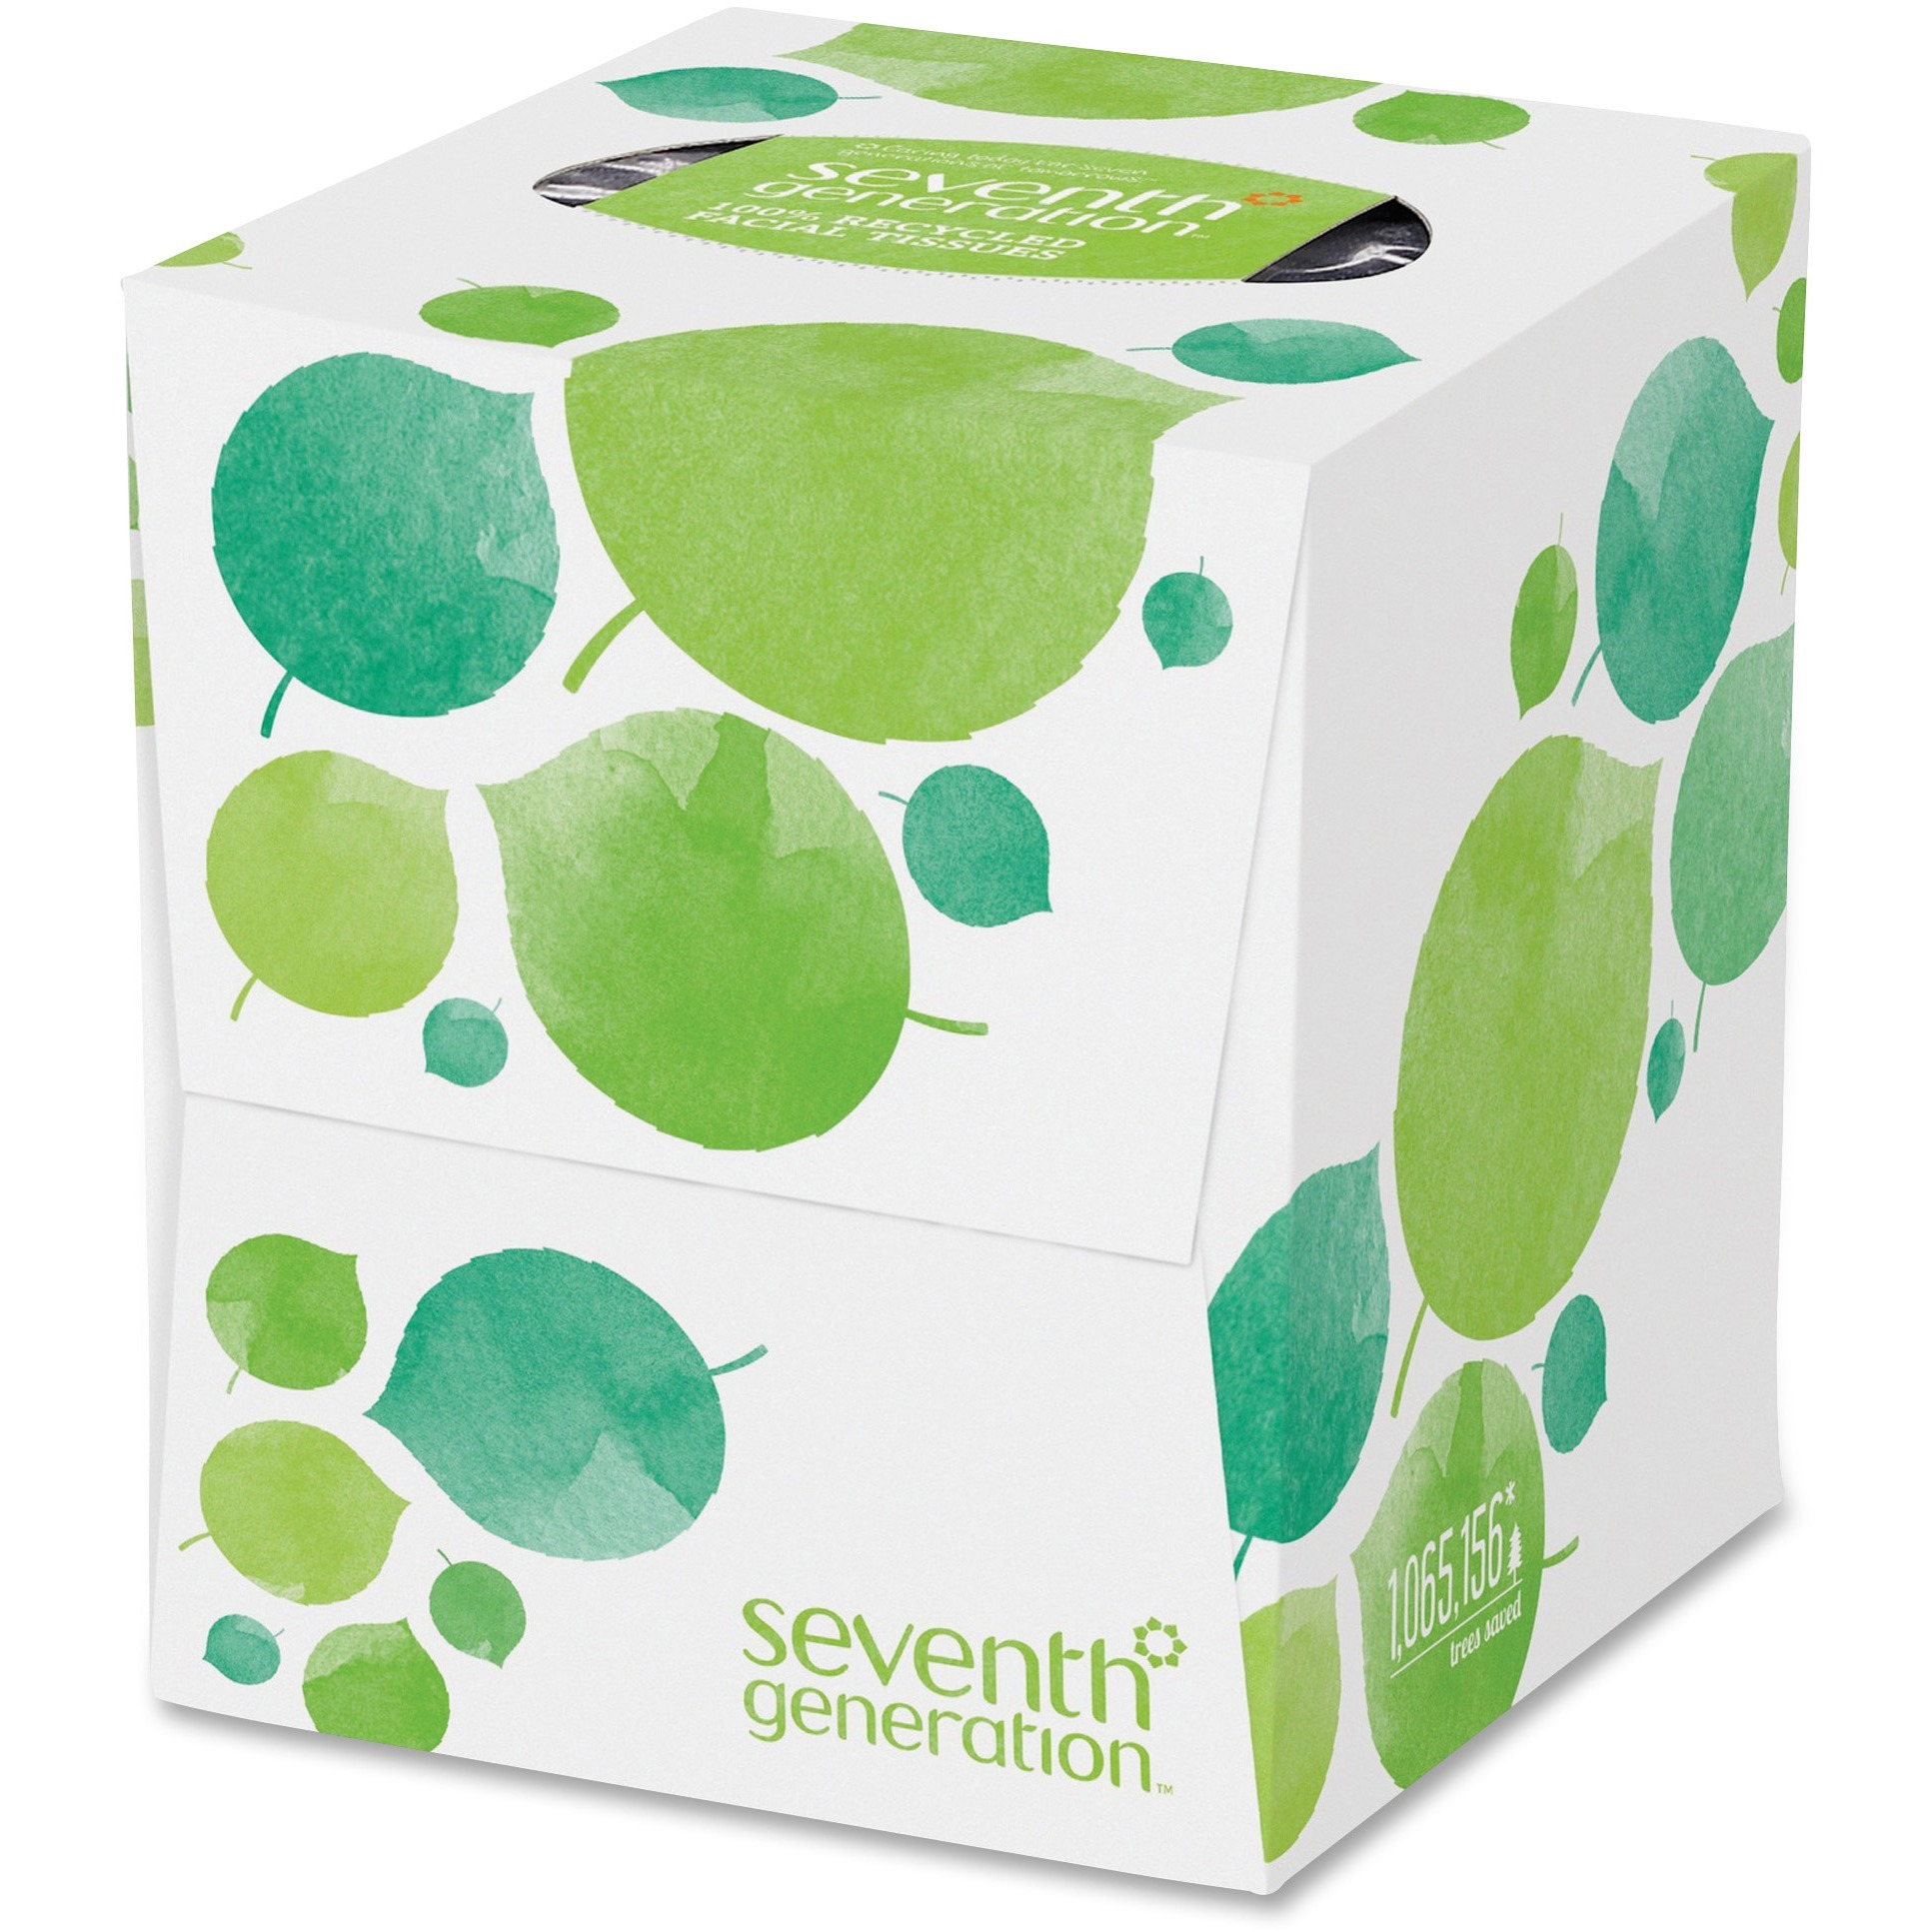 Seventh Generation, SEV13719CT, 2-ply Facial Tissue, 36 / Carton, White